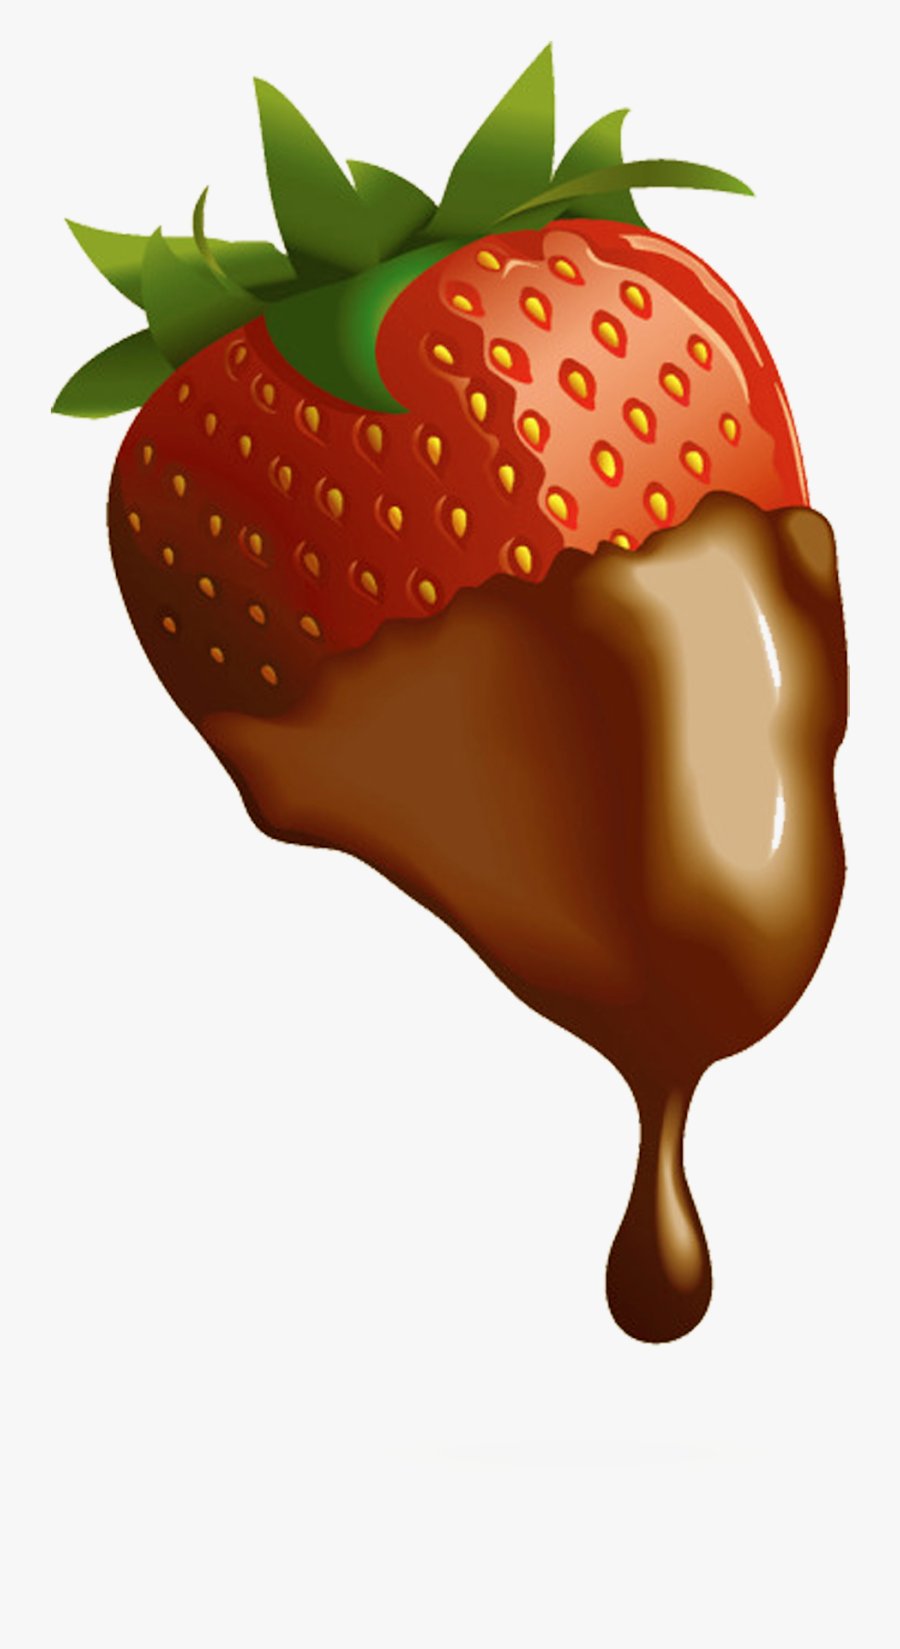 Strawberry Chocolate-covered Fruit Clip Art - Chocolate Covered Strawberries Transparent, Transparent Clipart